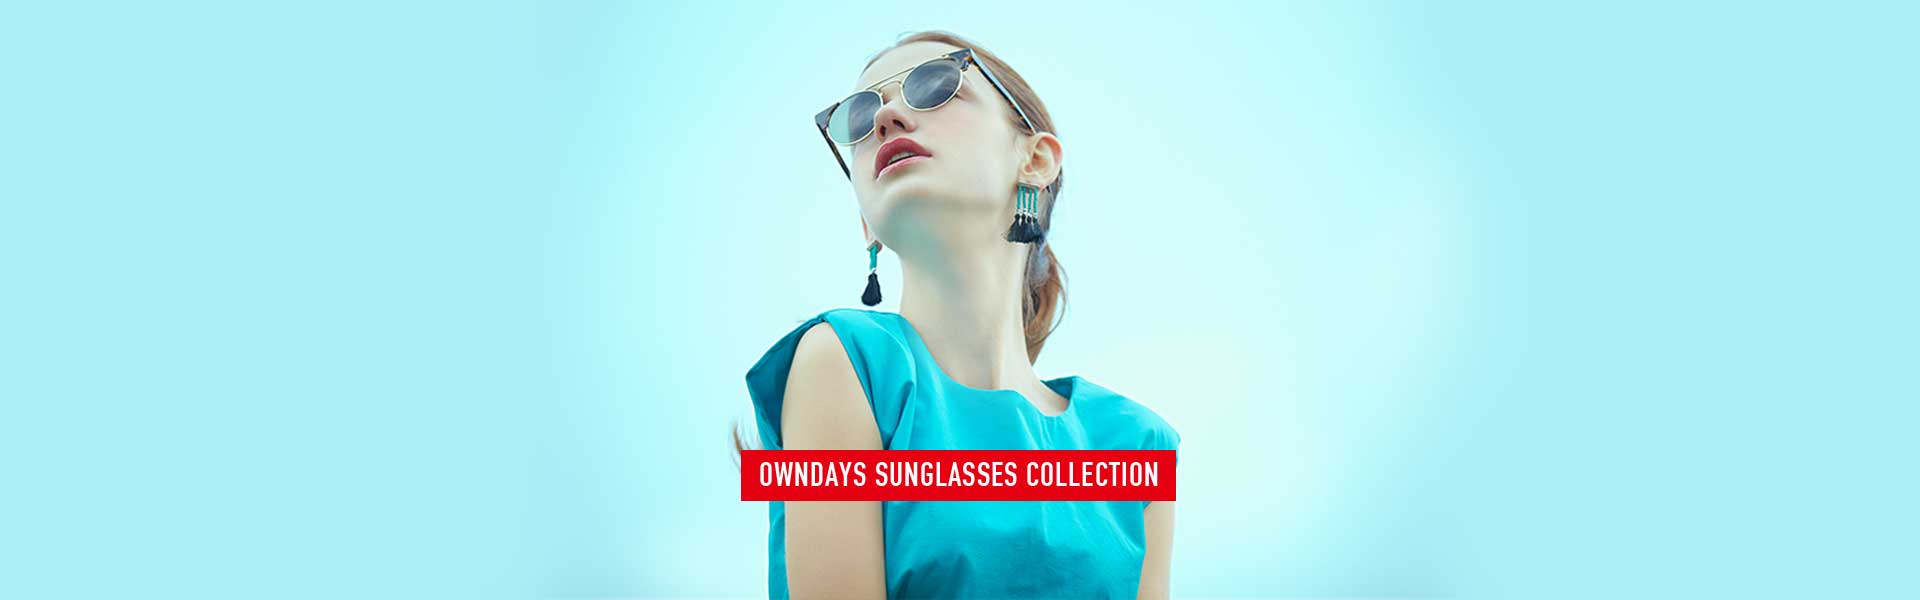 Sunglasses Collection 2016 - Early